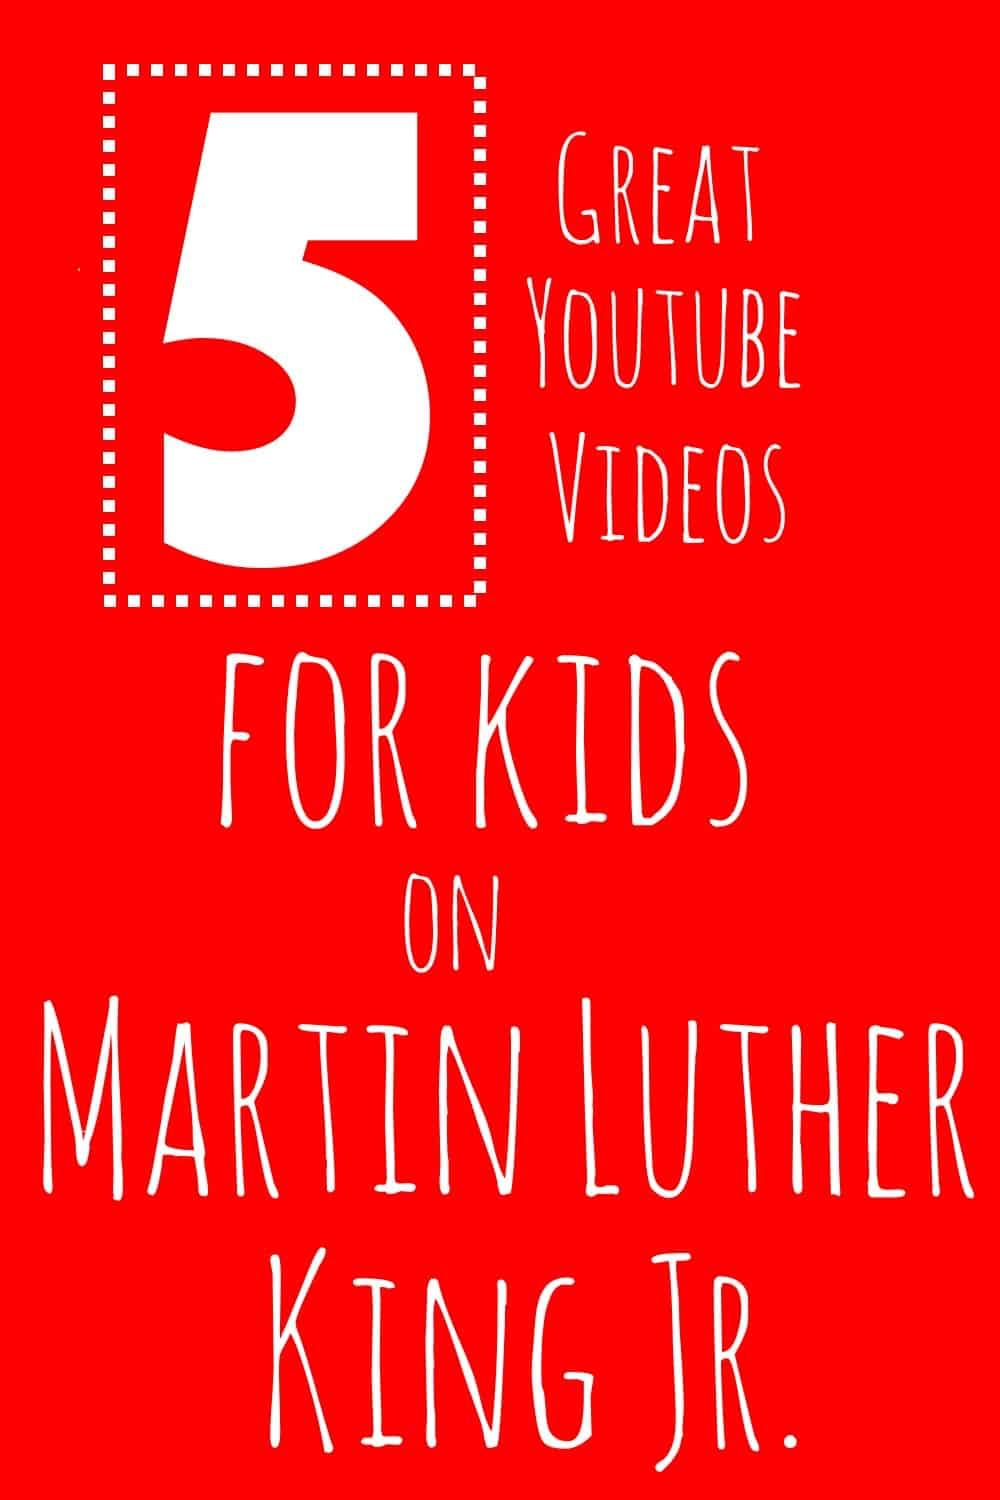 5 youtube videos on martin luther king jr